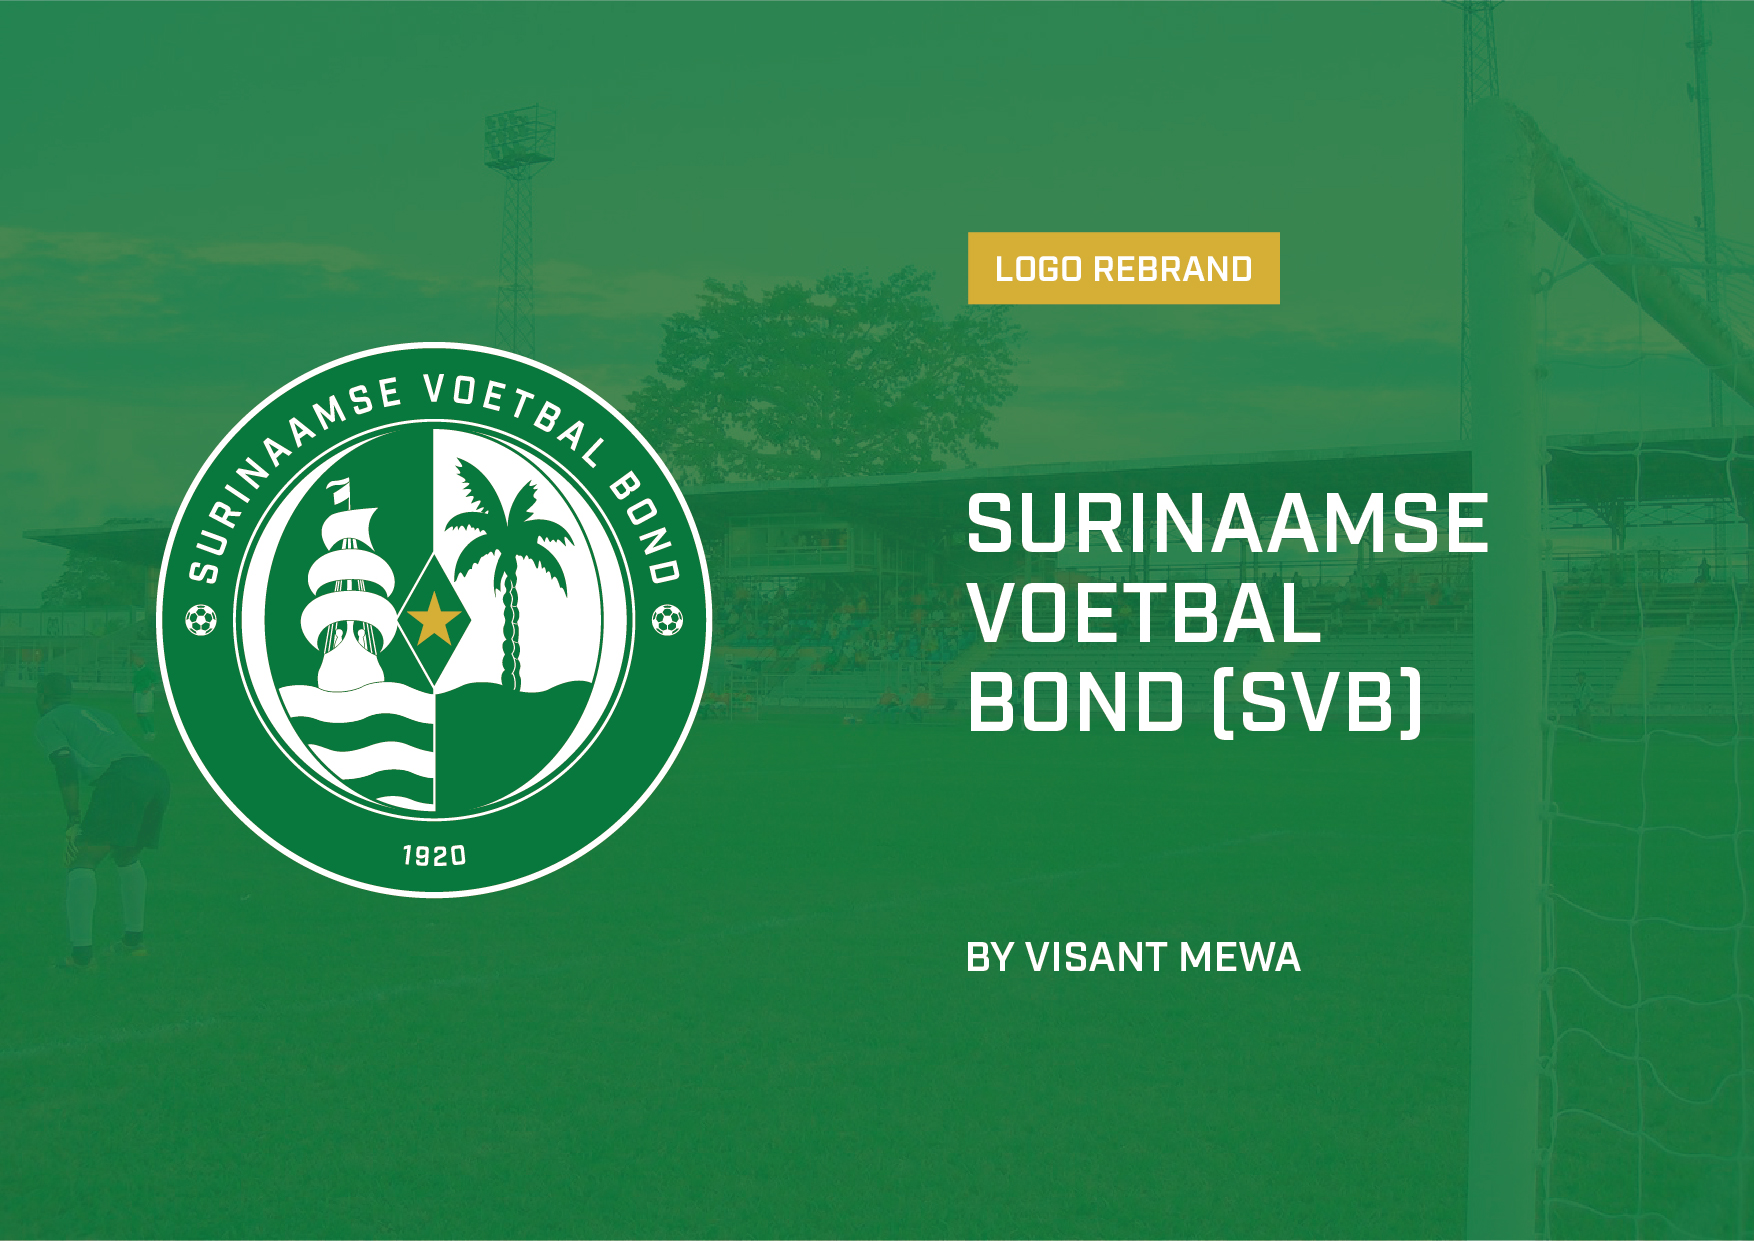 Surinaamse Voetbal Bond Logo Design